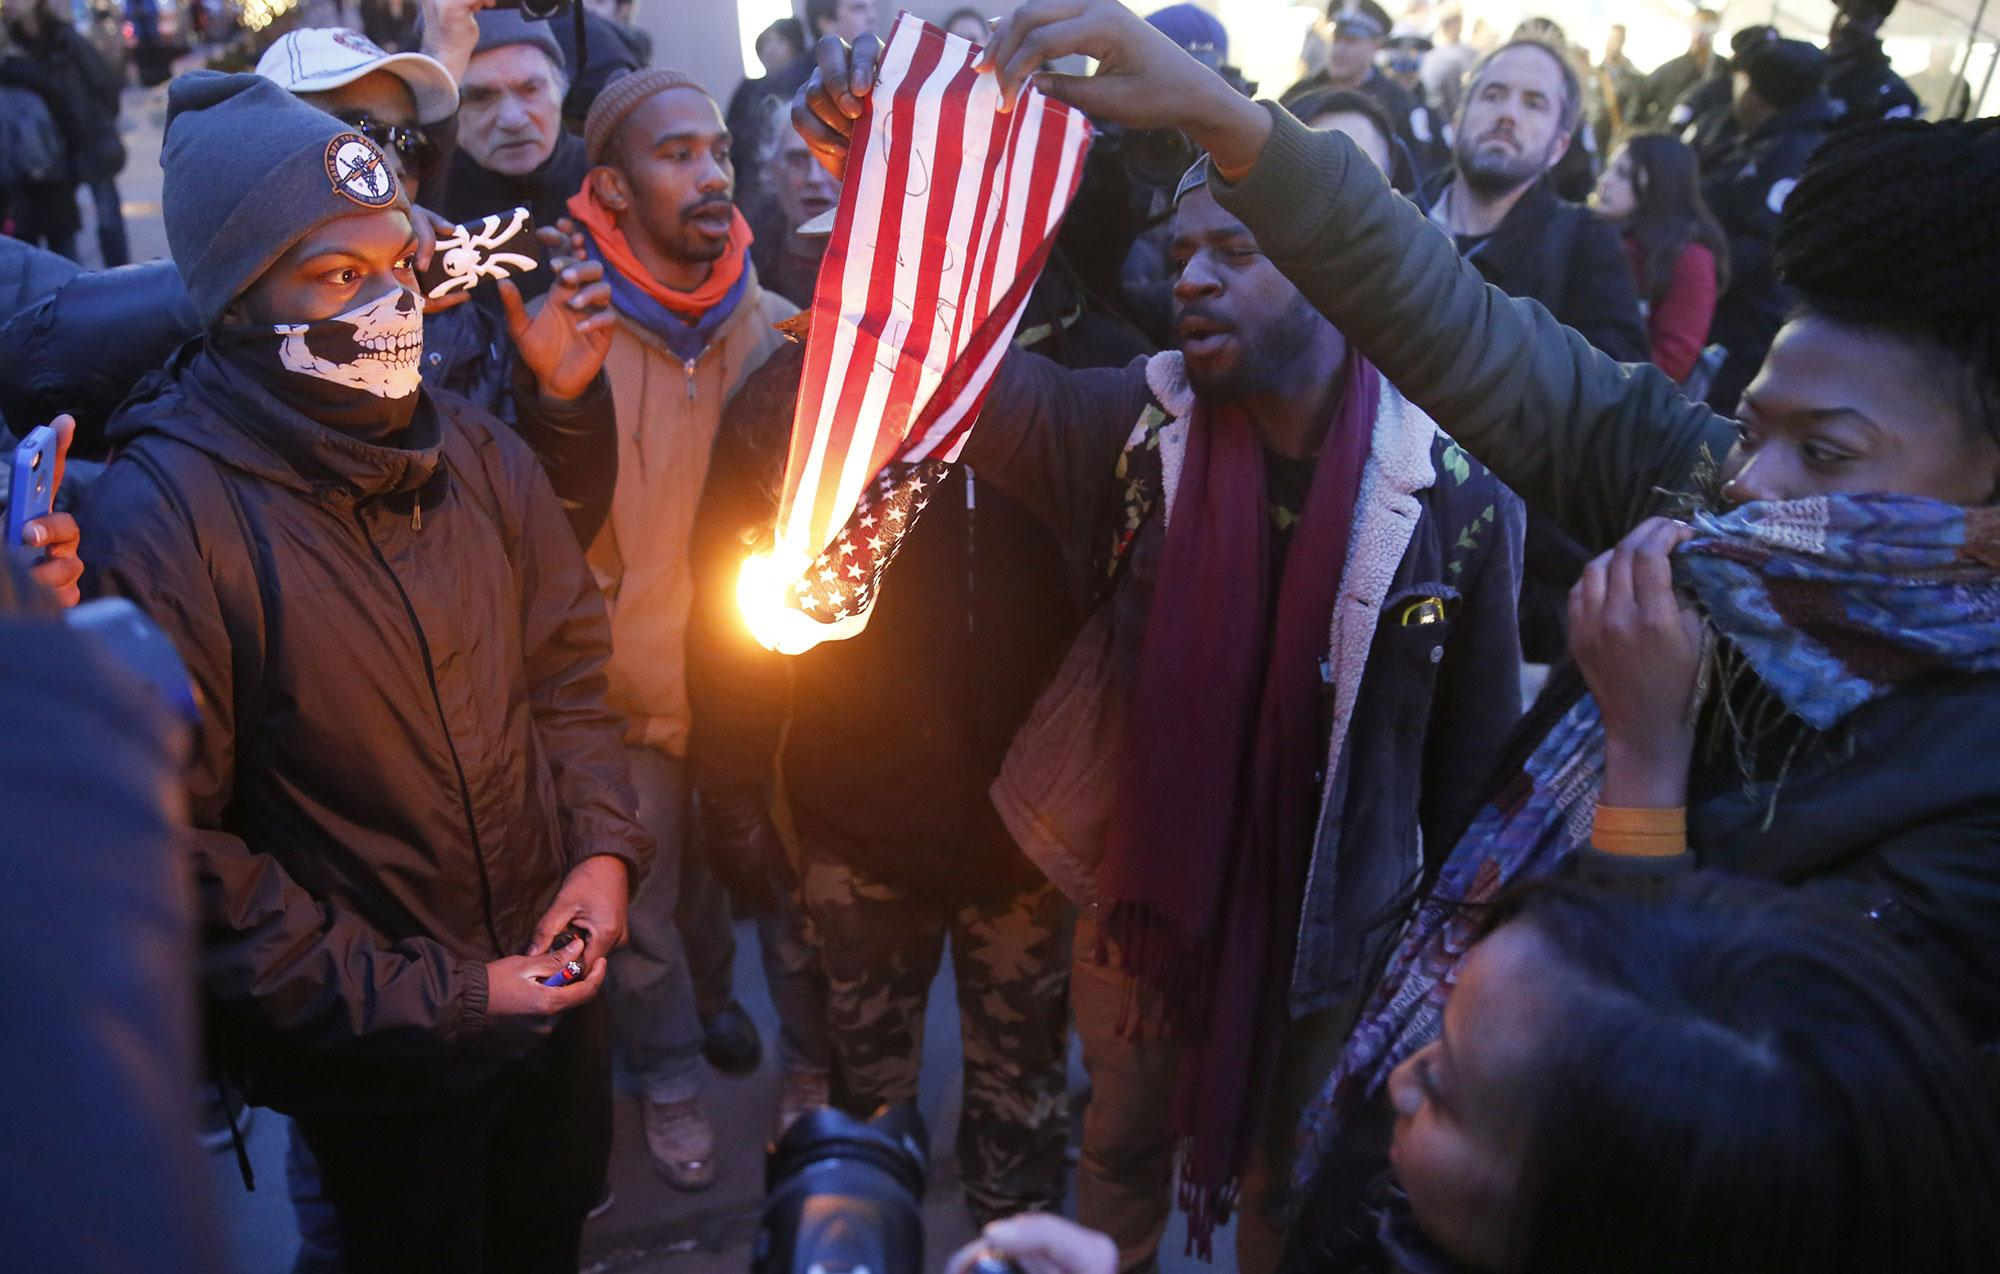 <p>Protesters burn an American flag outside the Apple store on Chicago's Magnificent Mile in a continued protest against Chicago police, the mayor and state's attorney Tuesday, Feb. 23, 2016, in Chicago. (AP Photo/Charles Rex Arbogast) </p>